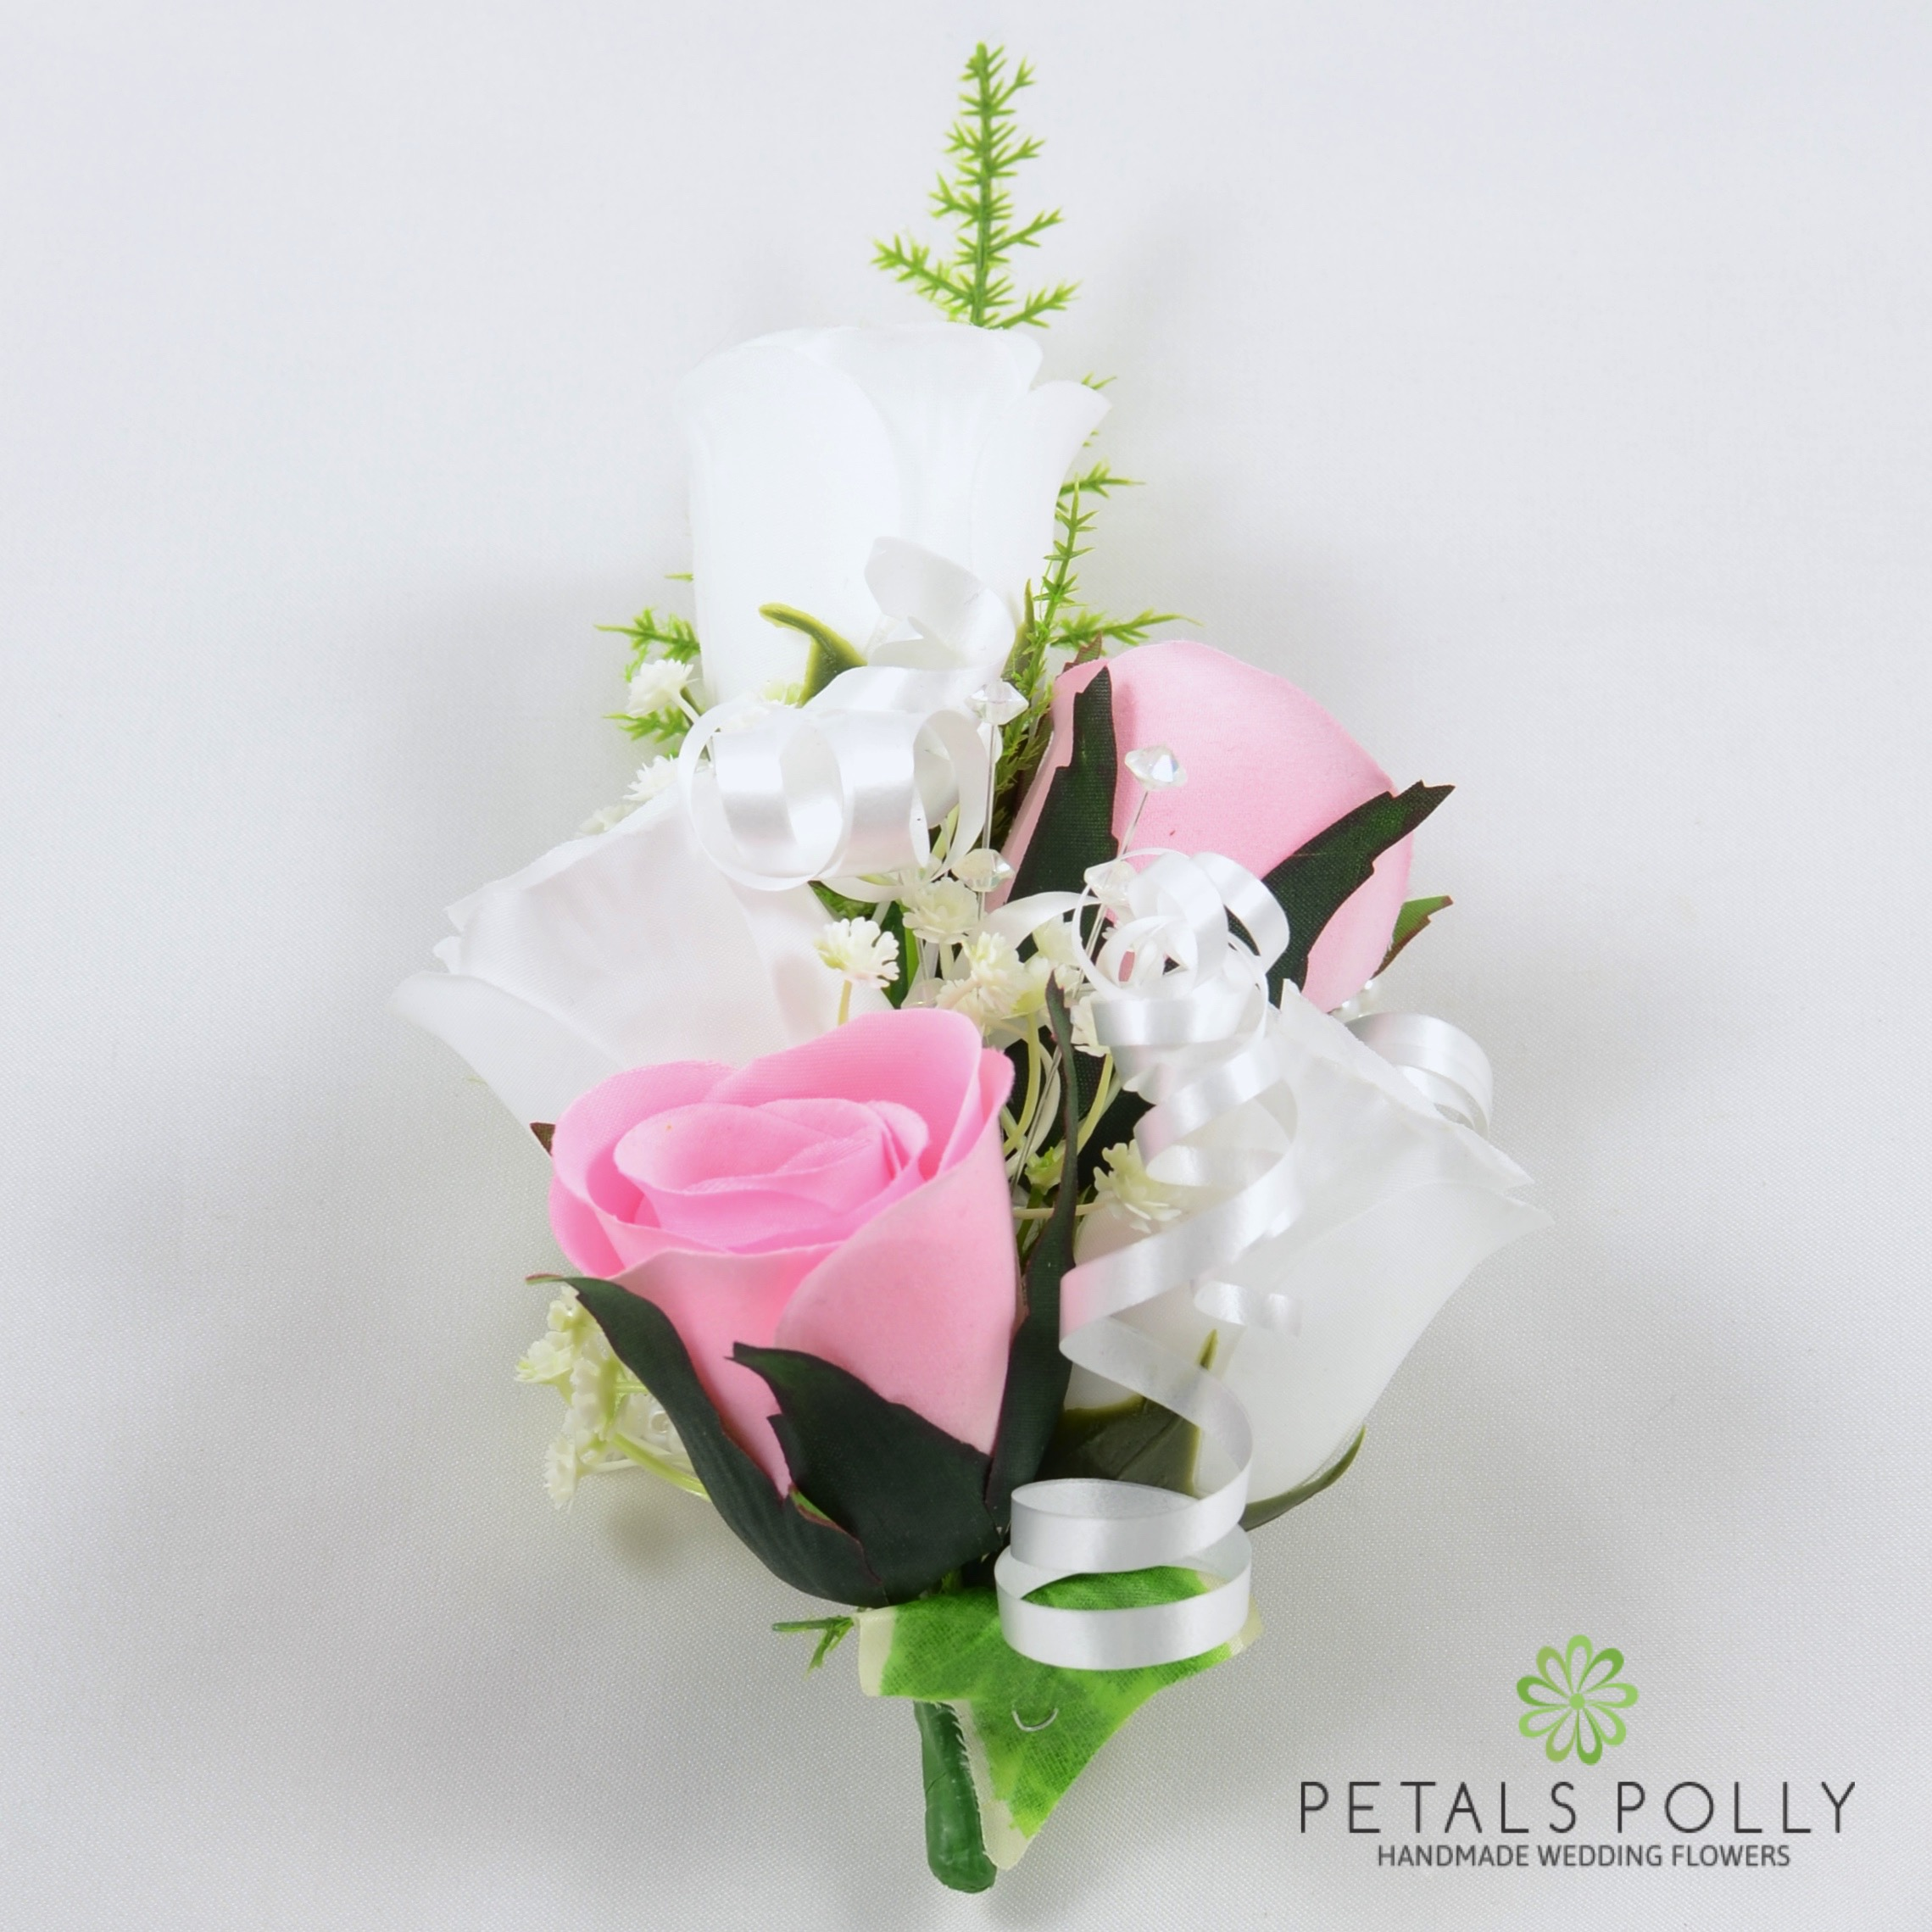 Baby Pink White Rose Wrist Corsage With Crystals Ivy And Greenery